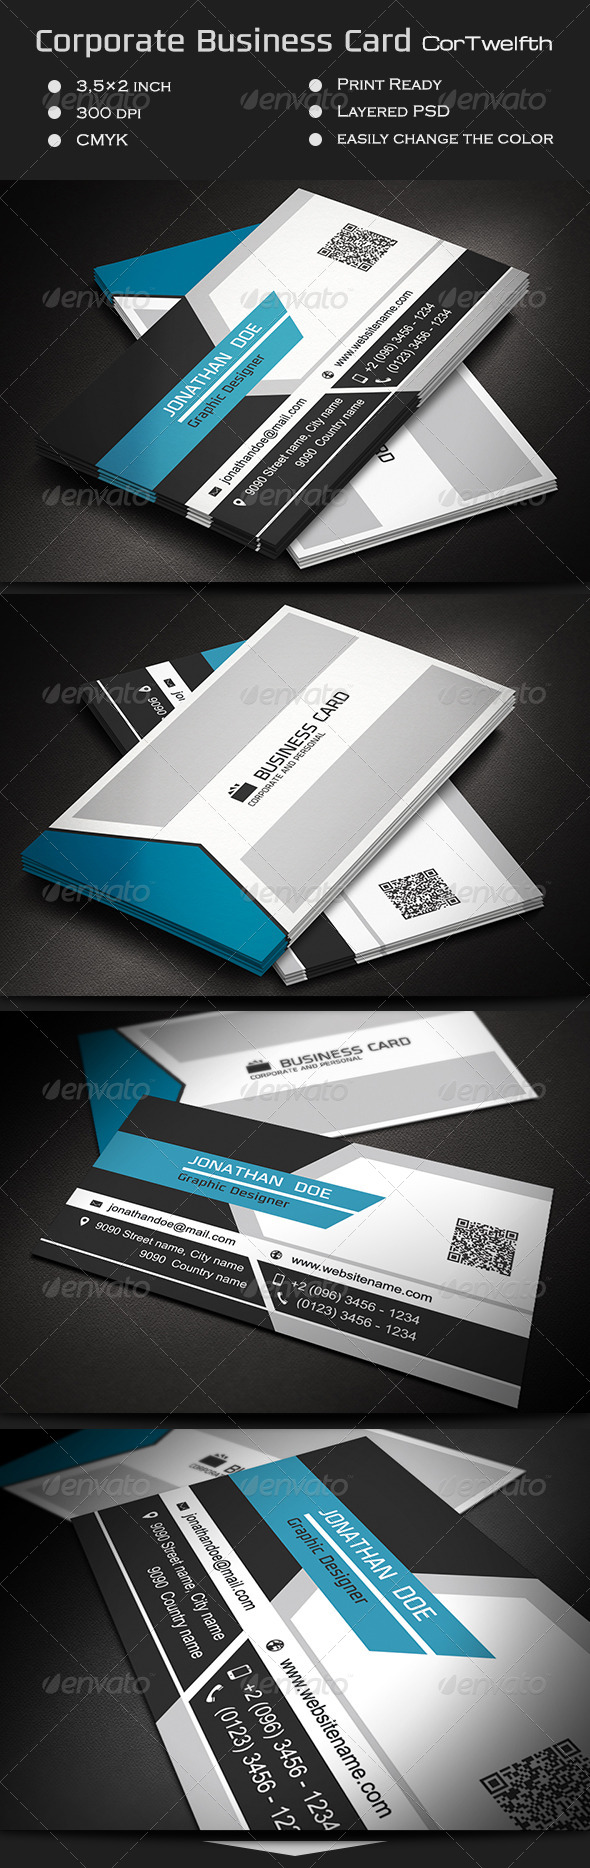 GraphicRiver Corporate Business Card CorTwelfth 7428307